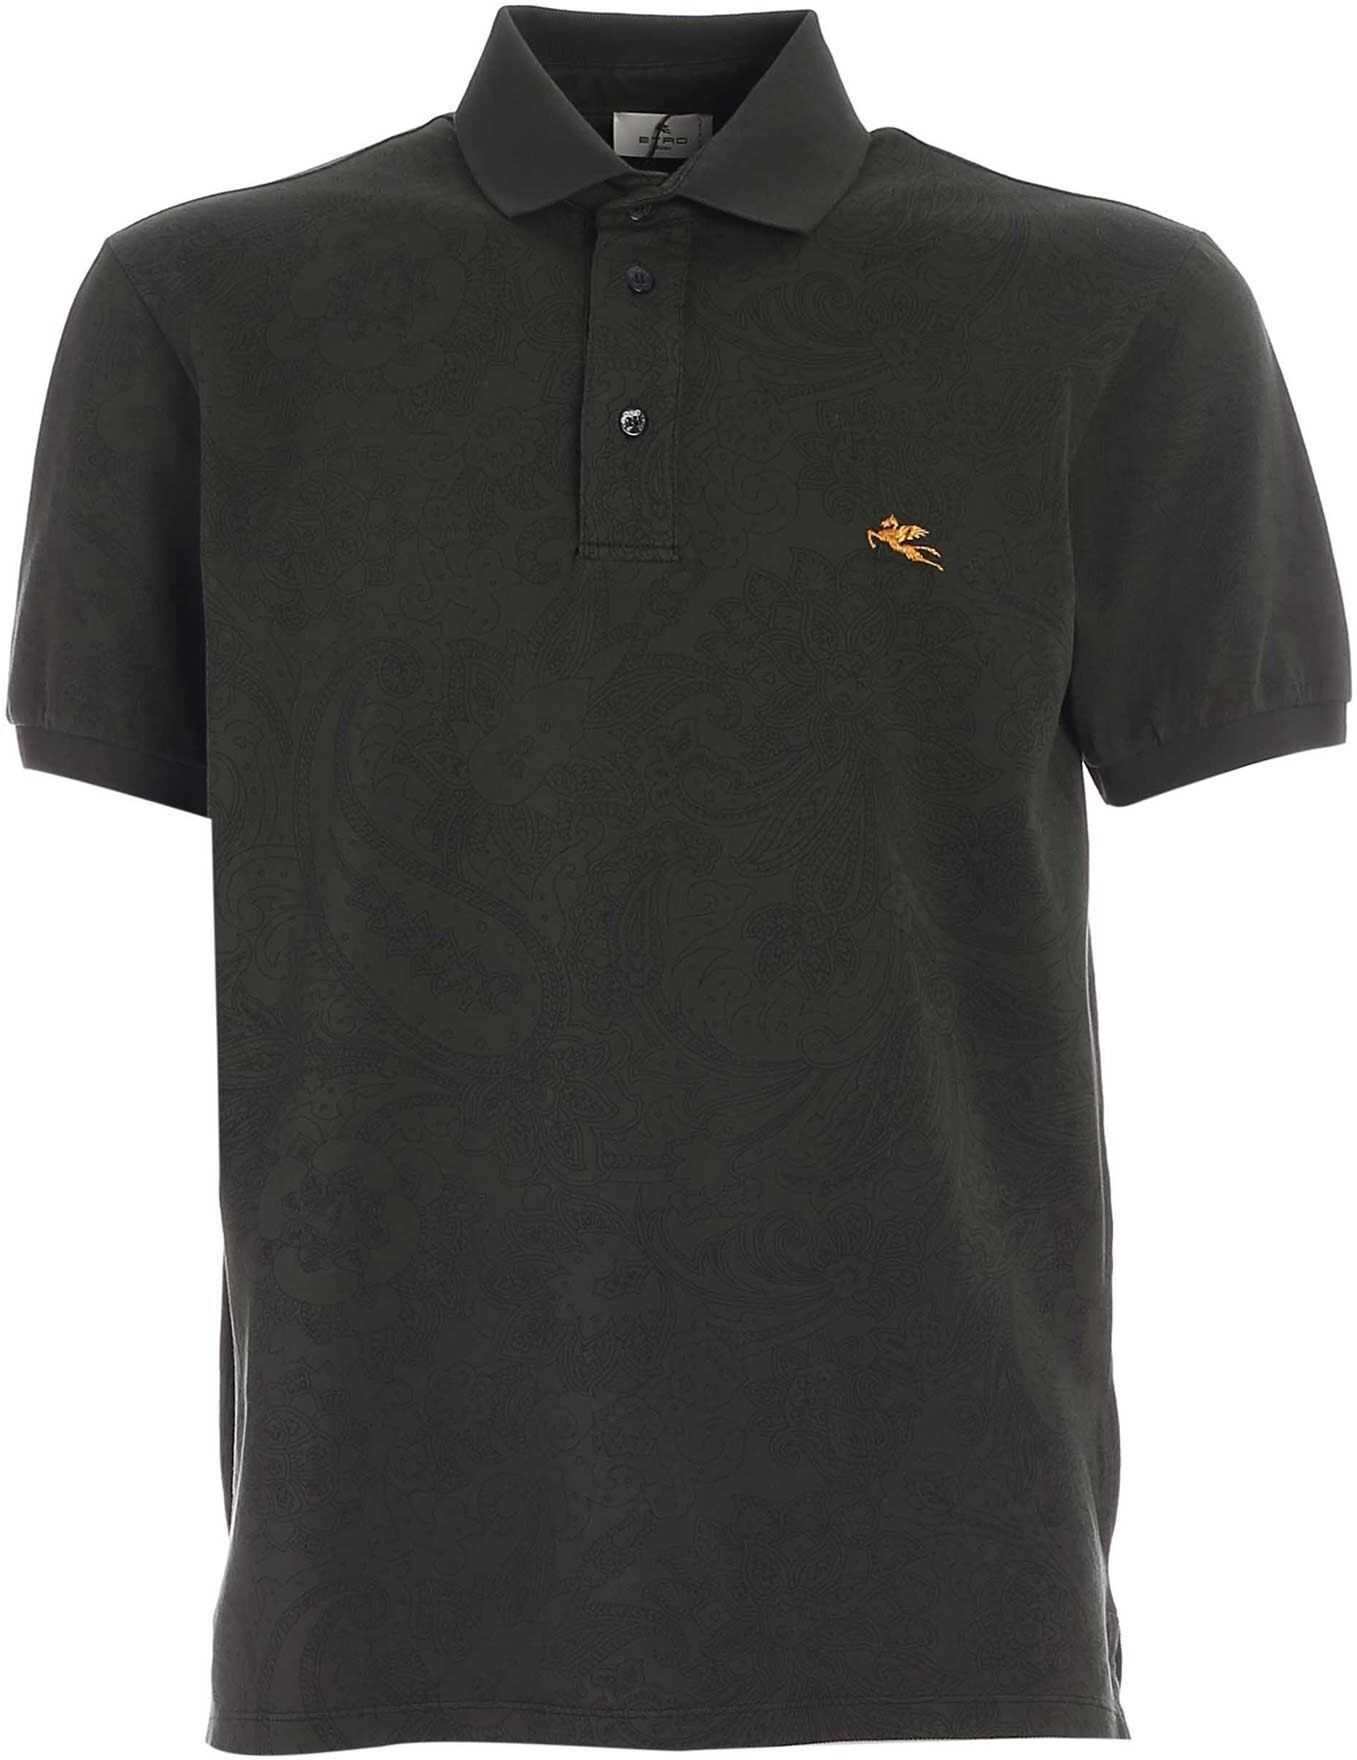 ETRO Floral Pattern Polo Shirt In Green Green imagine